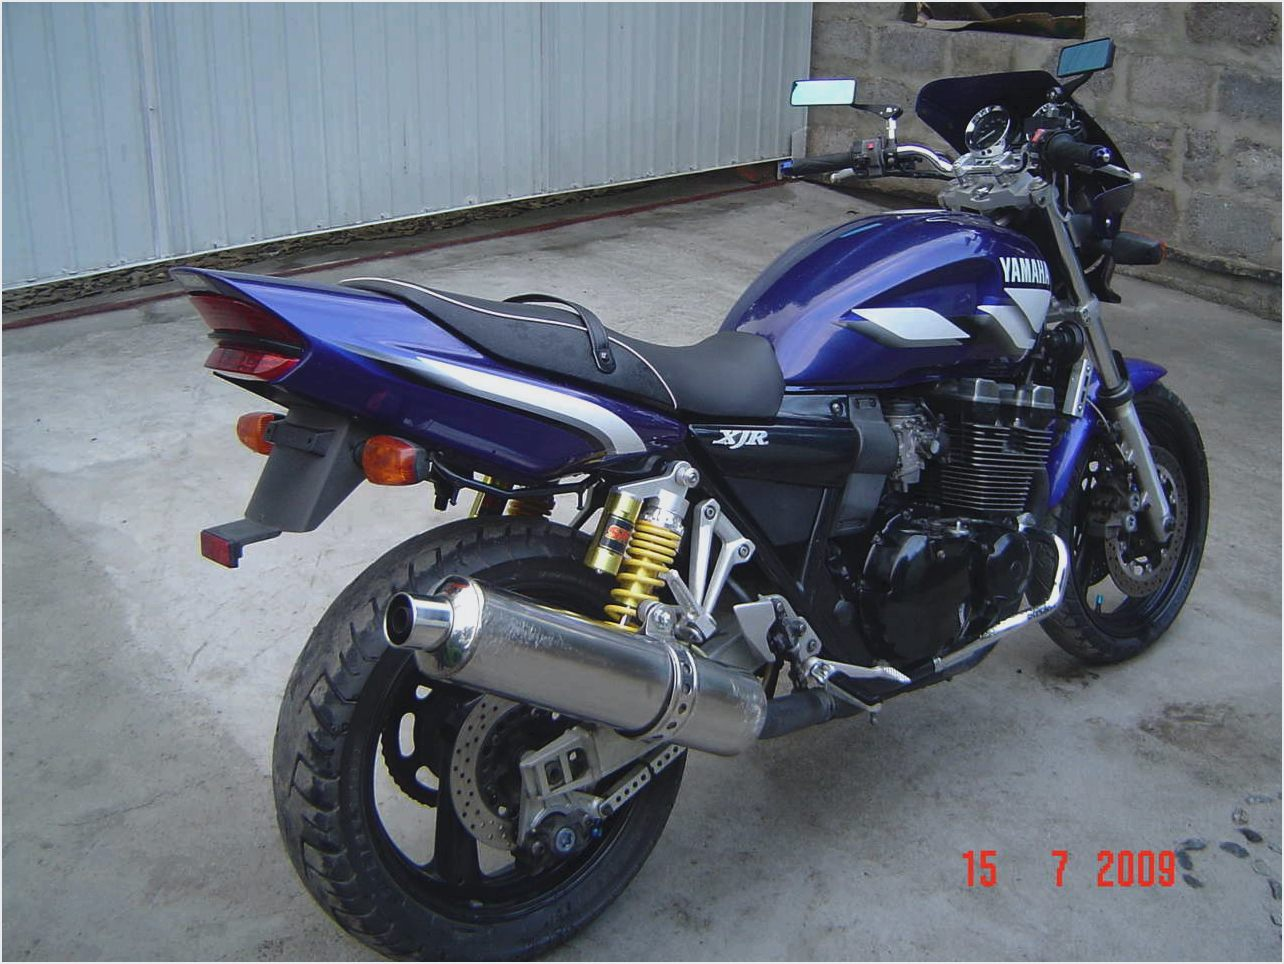 Yamaha XJR 400 R 2005 images #91276